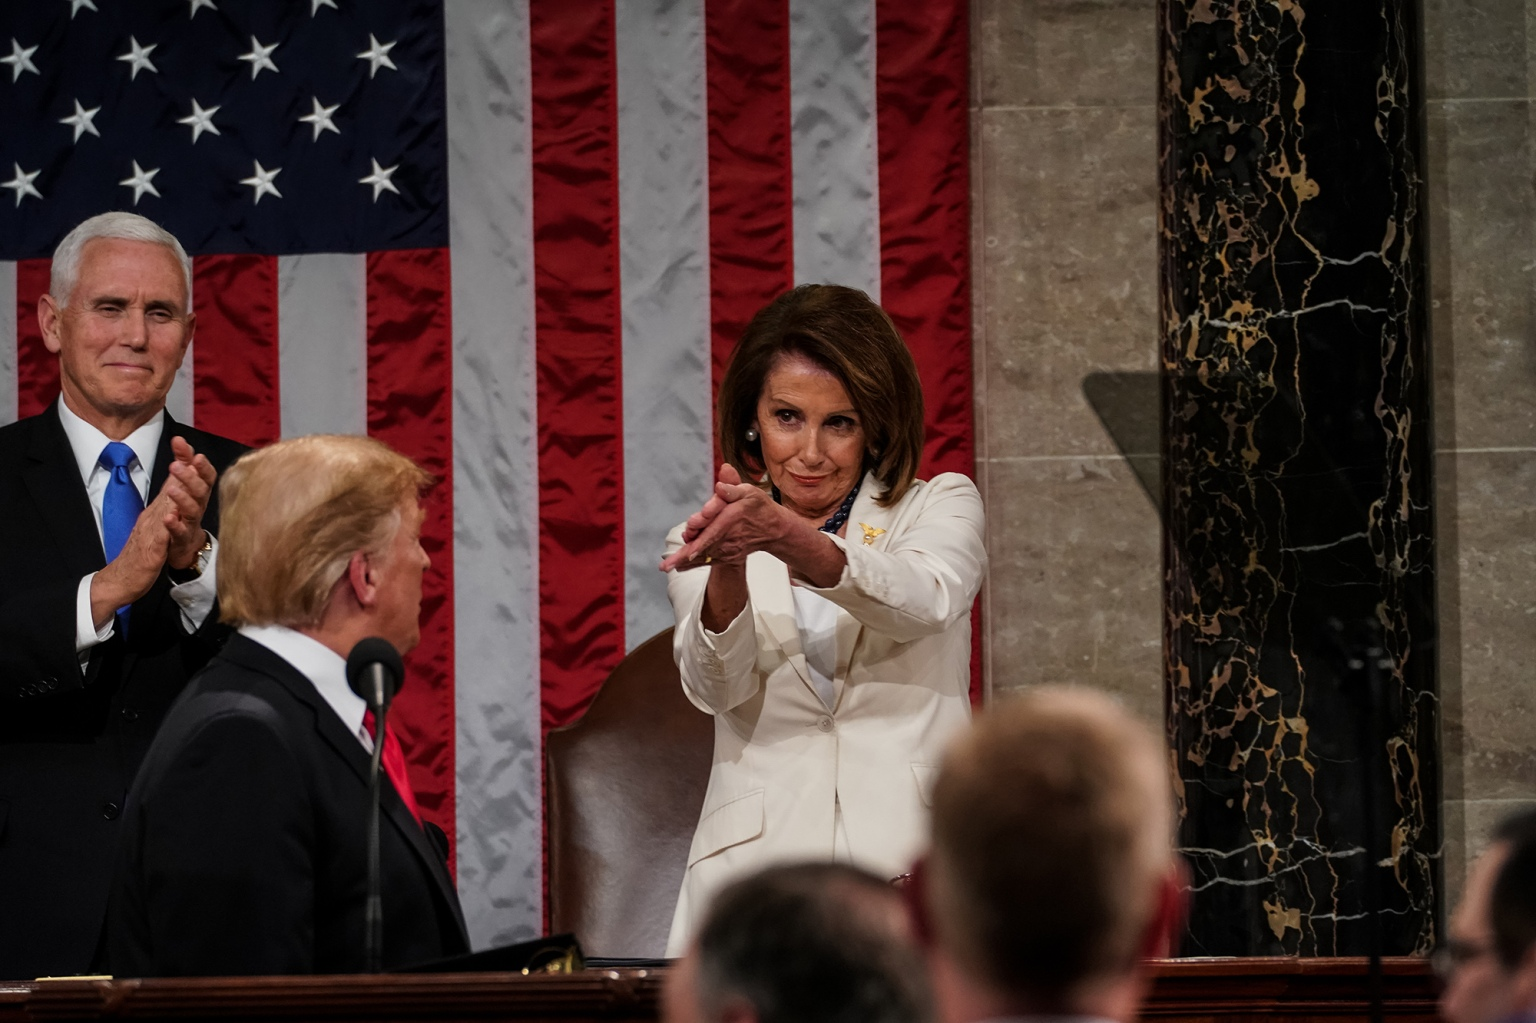 Speaker of the House Nancy Pelosi and Vice President Mike Pence applaud U.S. President Donald Trump at his State of the Union address in Washington on Feb. 5. (Doug Mills/Getty Images)